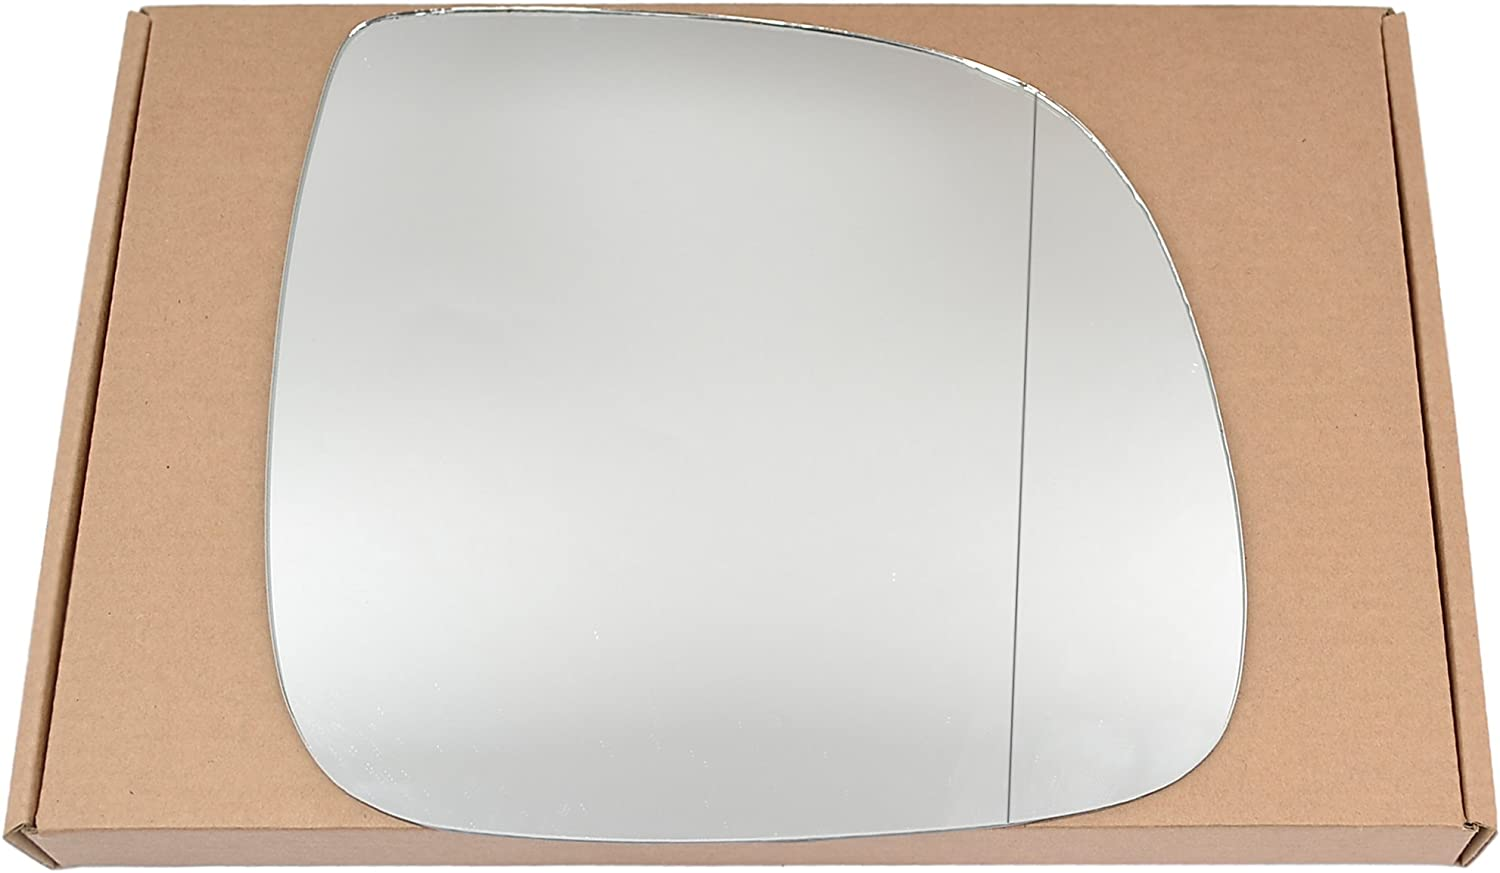 Right Off Driver Side Blind Spot Stick On Mirror glass #VWAmarok09-15-RWA